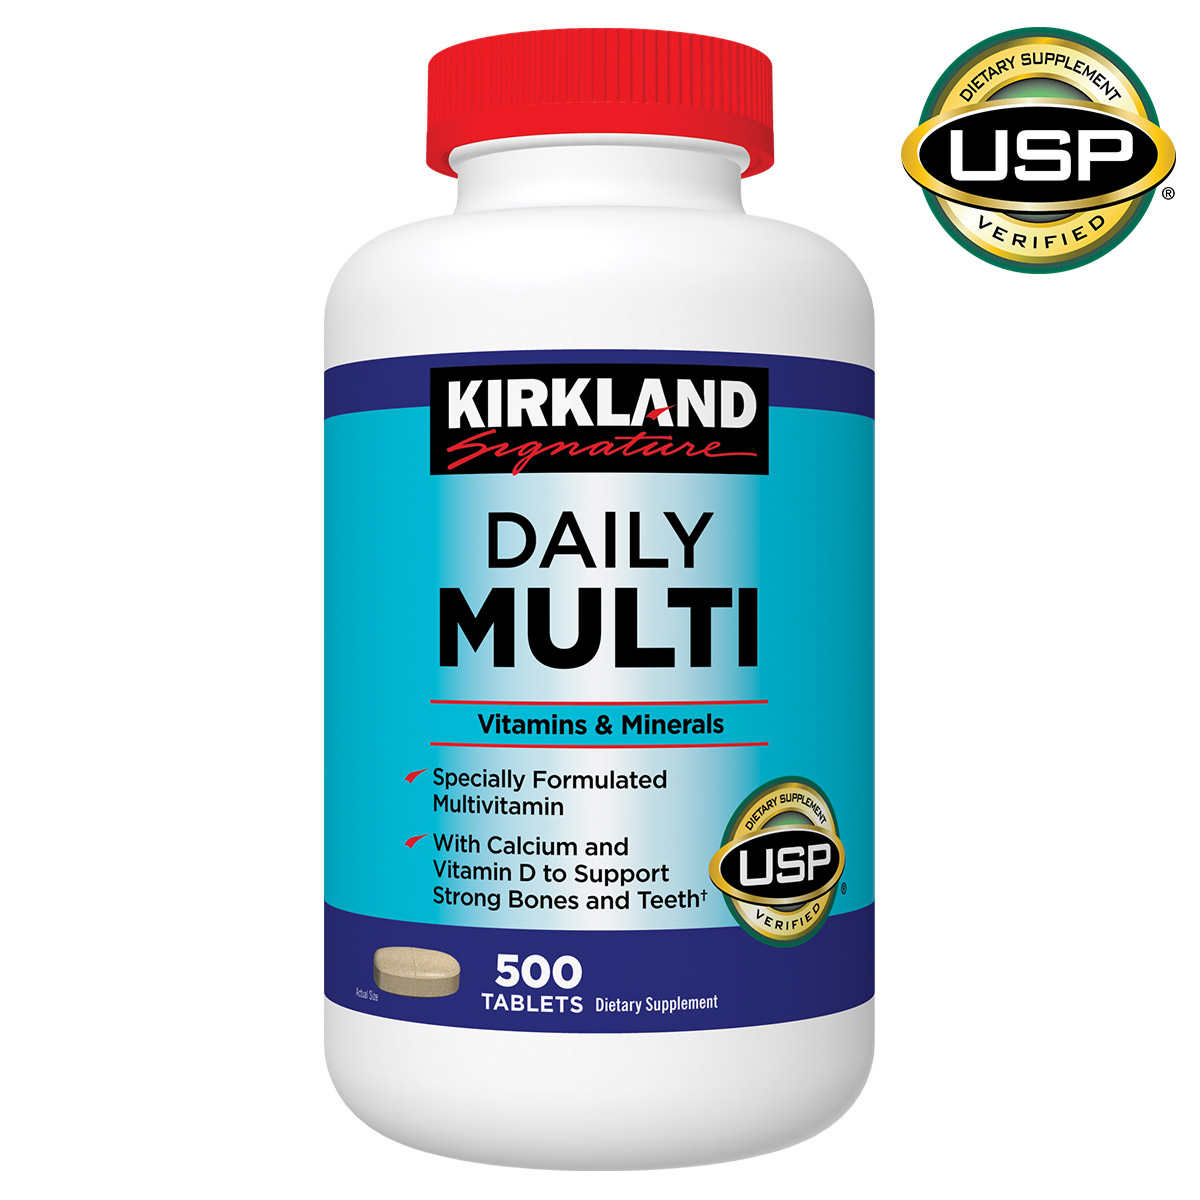 kirkland multi daily costco signature tablets multivitamin vitamin specially coupons january vitamins description